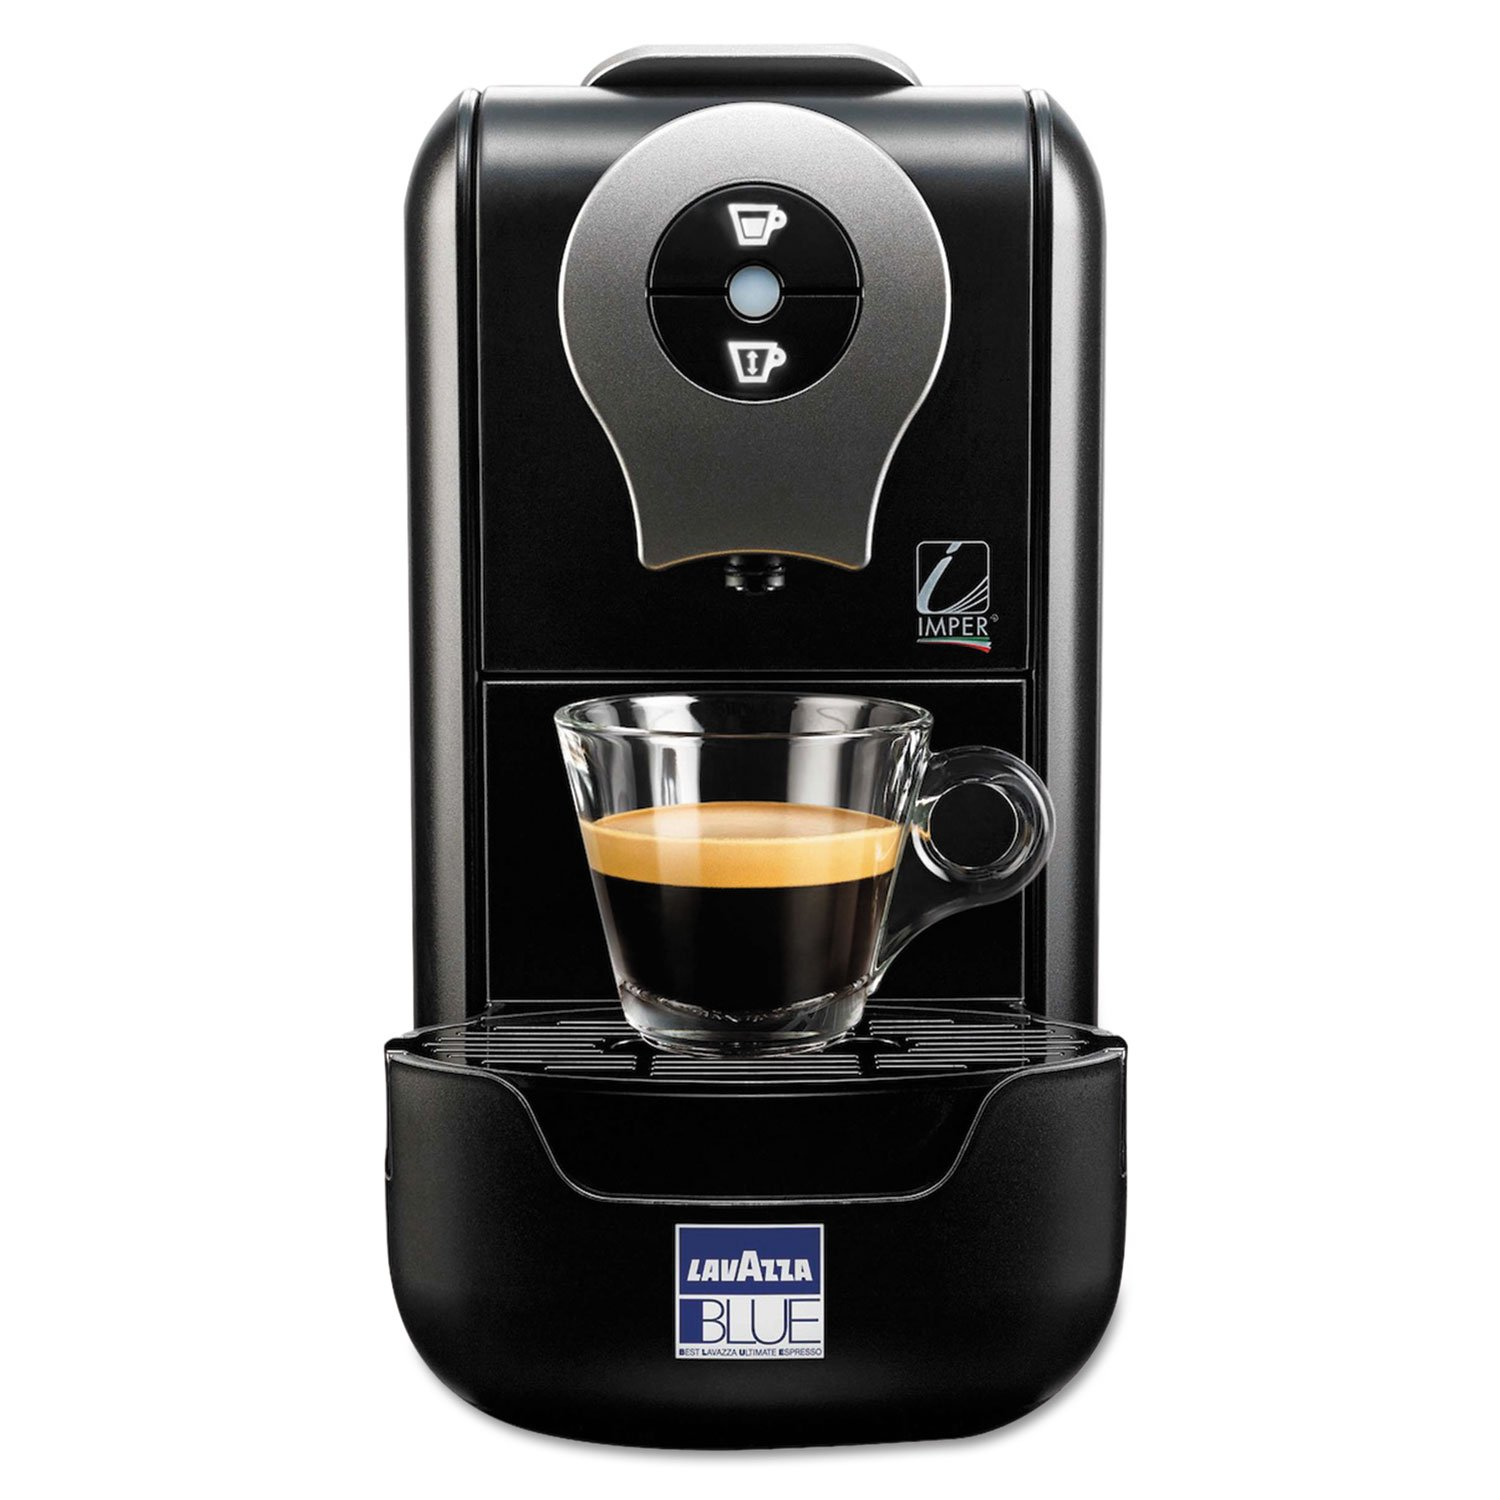 Lavazza LB 901 LB 901 Blue Single Serve Espresso Machine LB910, 13 cm x 23,5 cm x 36 cm Black